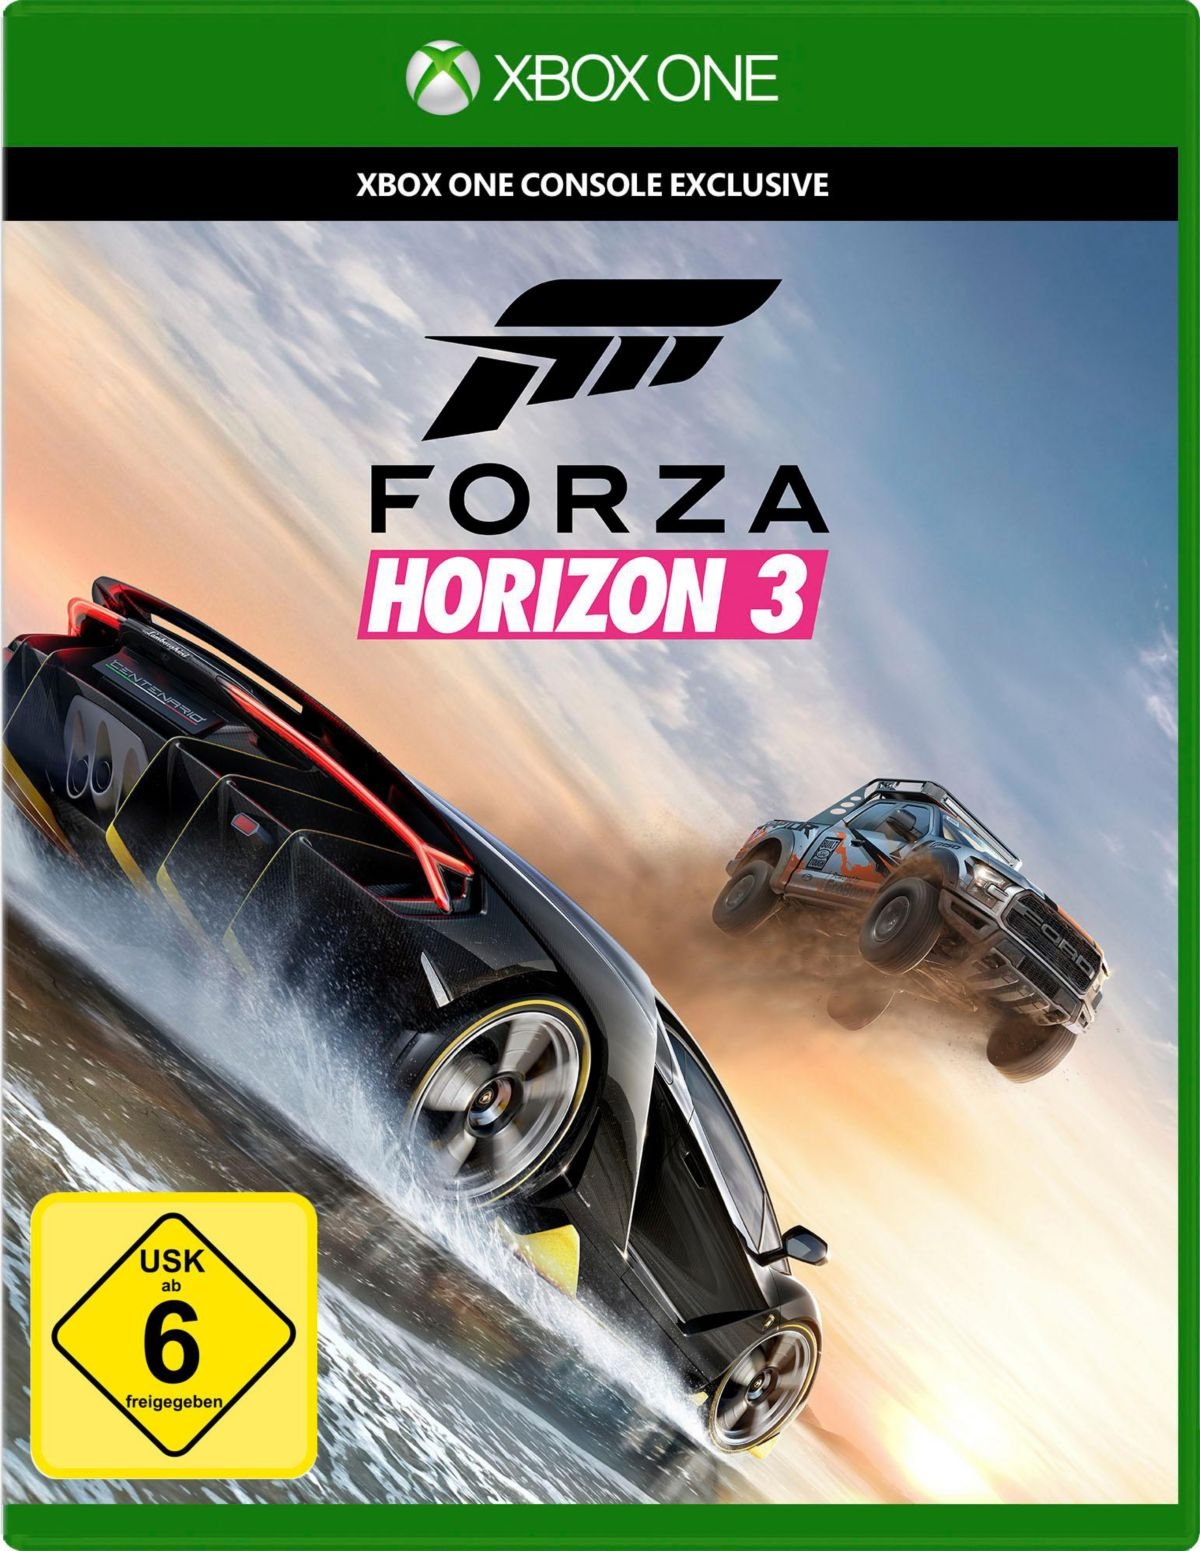 One Forza Horizon 3 Xbox One